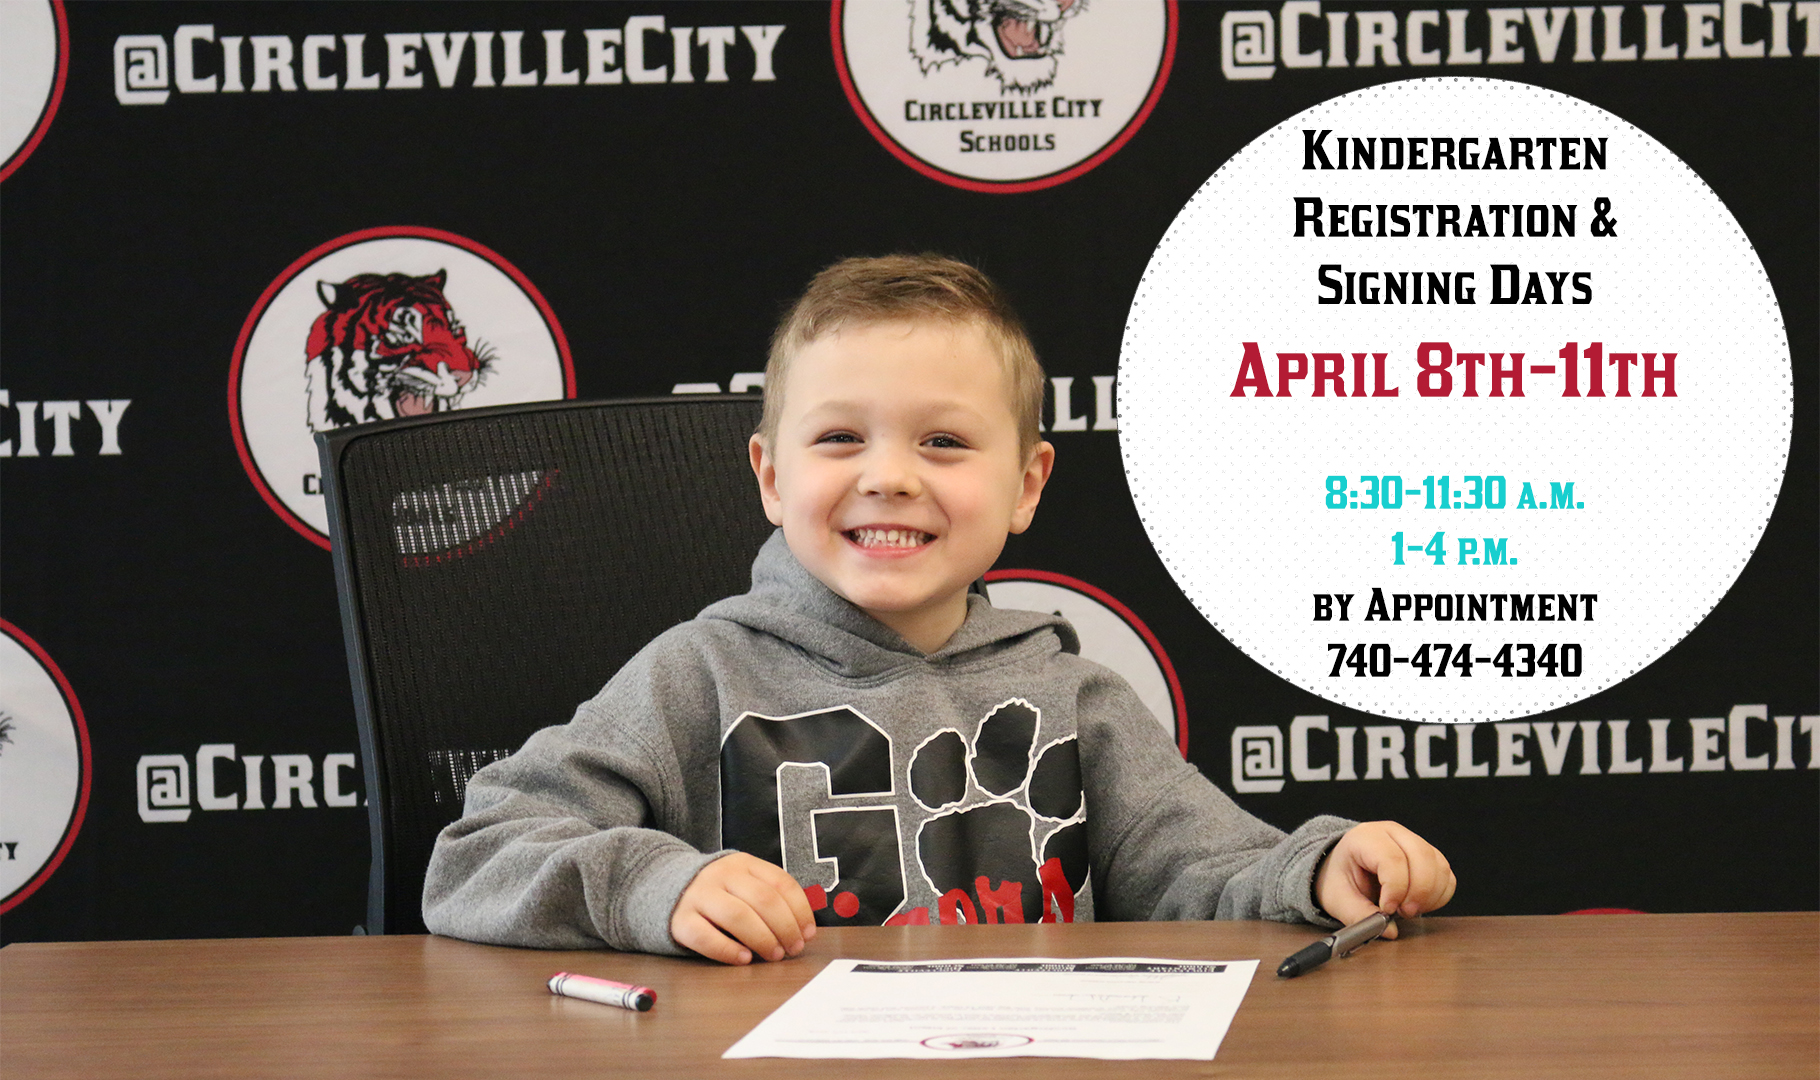 Kindergarten registration for the 2019-2020 school year will take place April 8th-11th on campus.